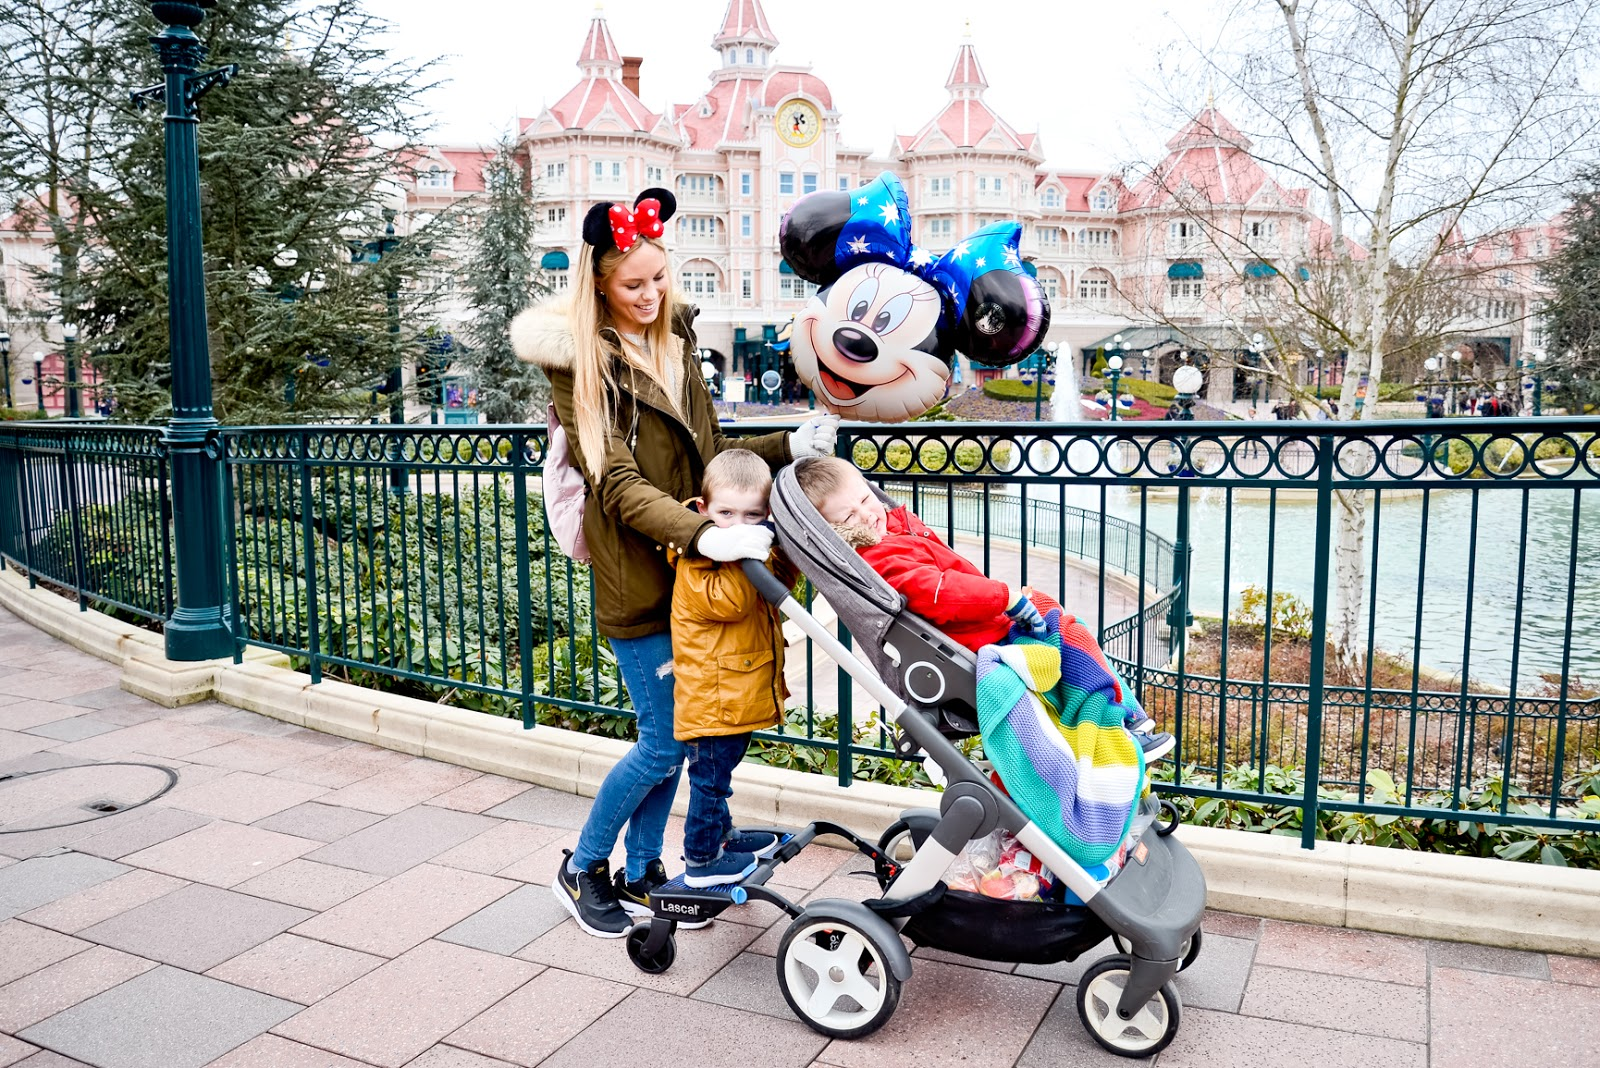 buggyboard disneyland, first time at disneyland paris, disneyland paris travel blog, disneyland, disneyland paris highlights, disneyland paris must do, vegetarians at disneyland paris,